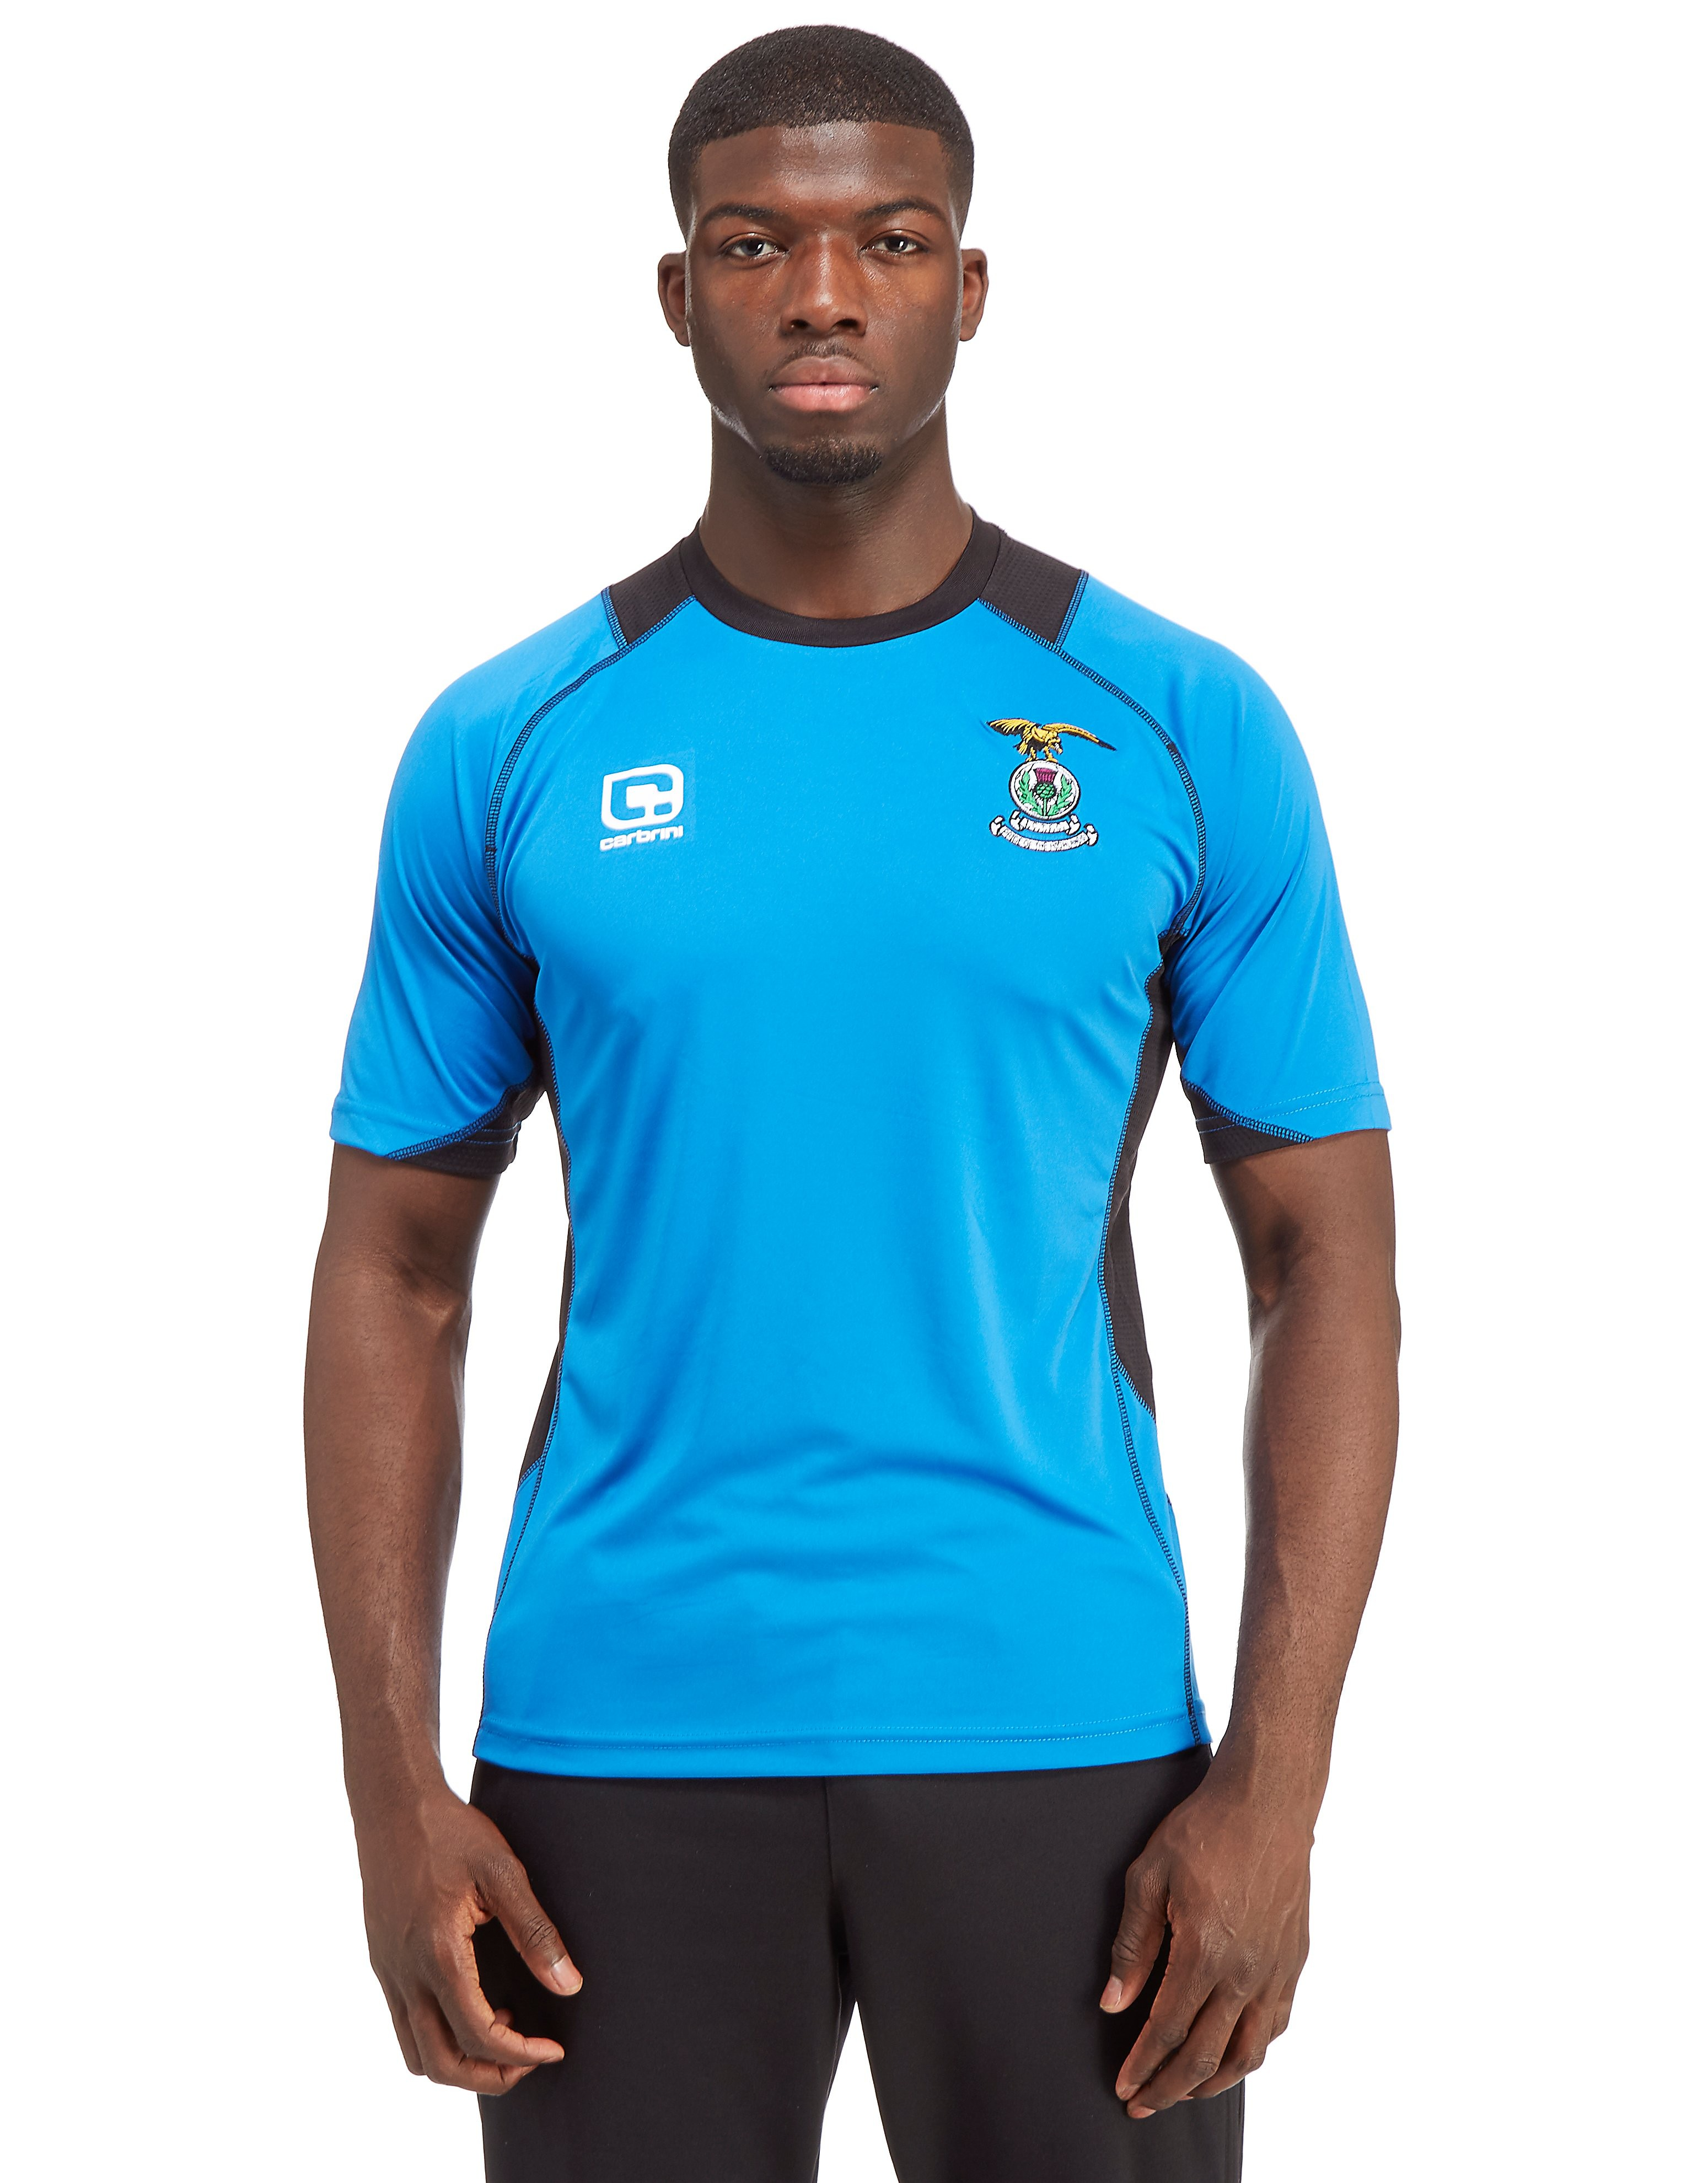 Carbrini Inverness CT 2016/17 Training T-Shirt